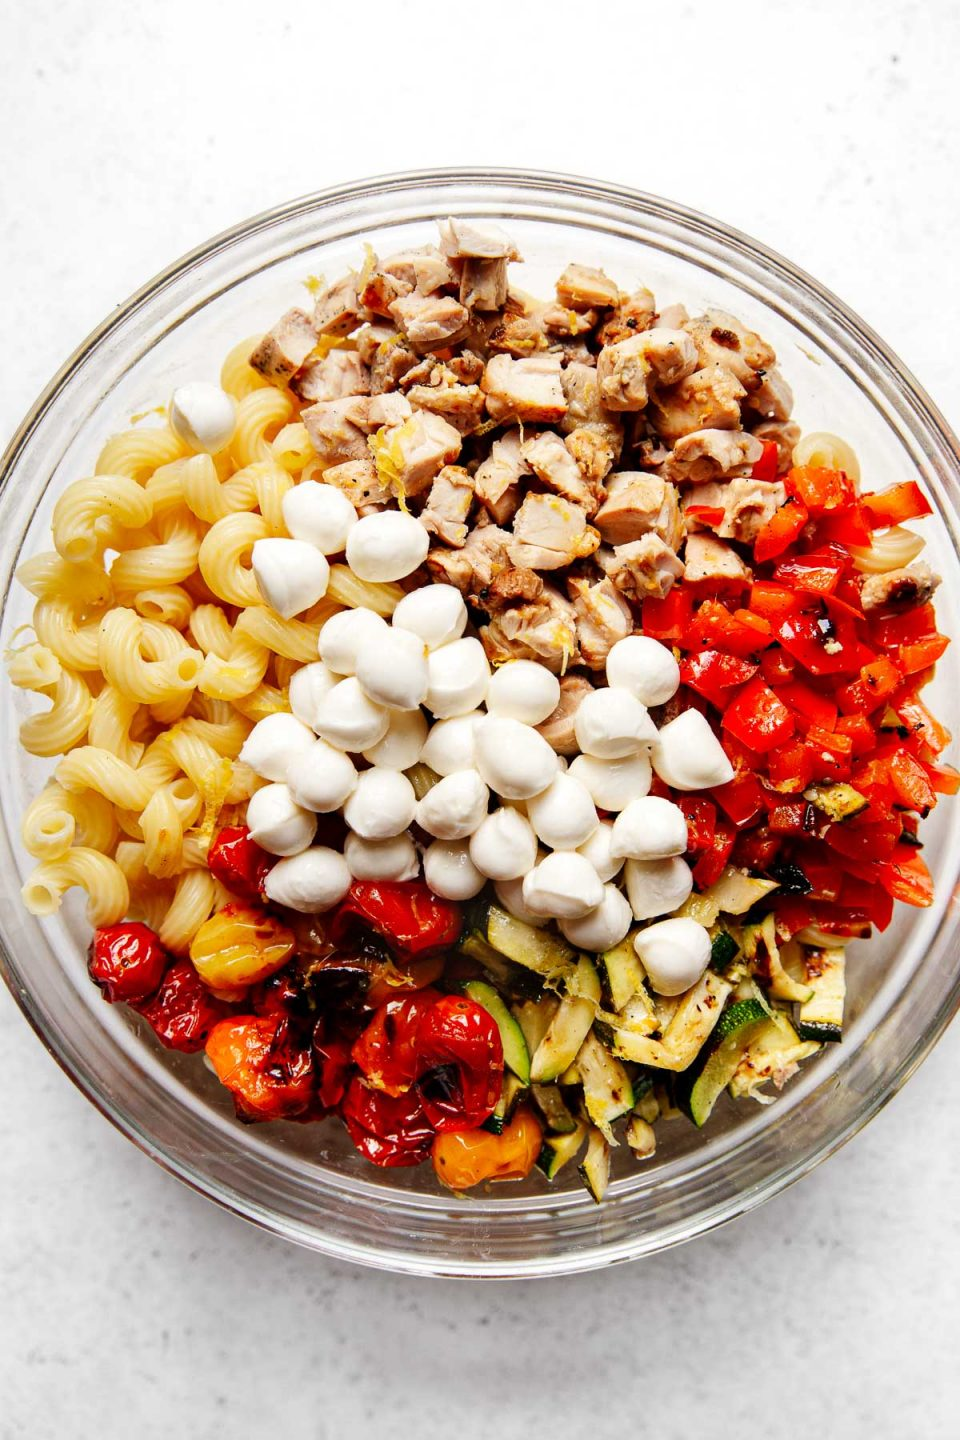 Summer pesto pasta salad ingredients arranged in groups in a large mixing bowl: cavatappi pasta, diced grilled chicken, diced grilled vegetables (bell pepper, zucchini & tomatoes), fresh mozzarella pearls.